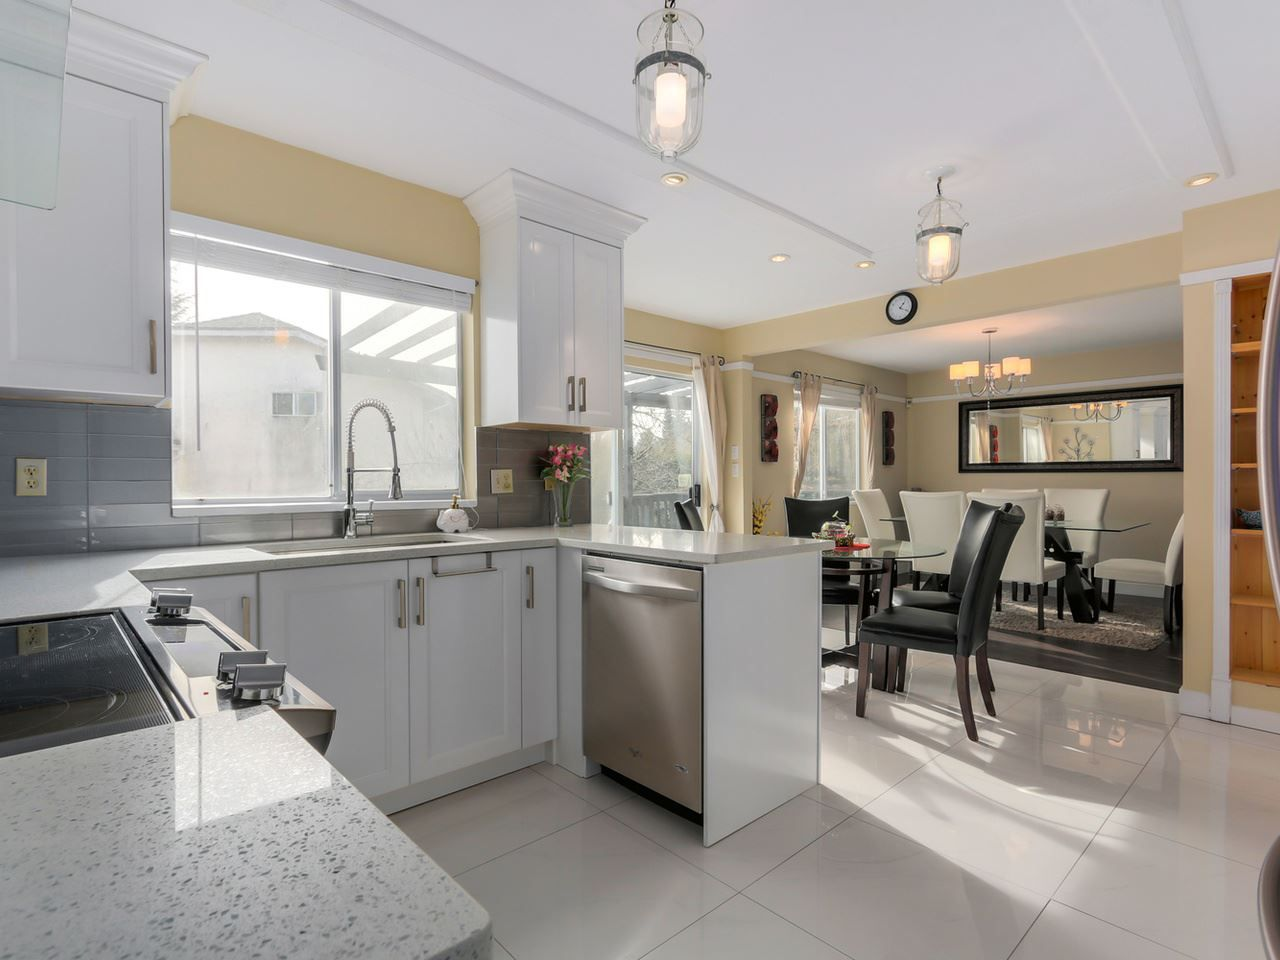 """Photo 3: Photos: 2868 TEMPE KNOLL Drive in North Vancouver: Tempe House for sale in """"TEMPE"""" : MLS®# R2046593"""